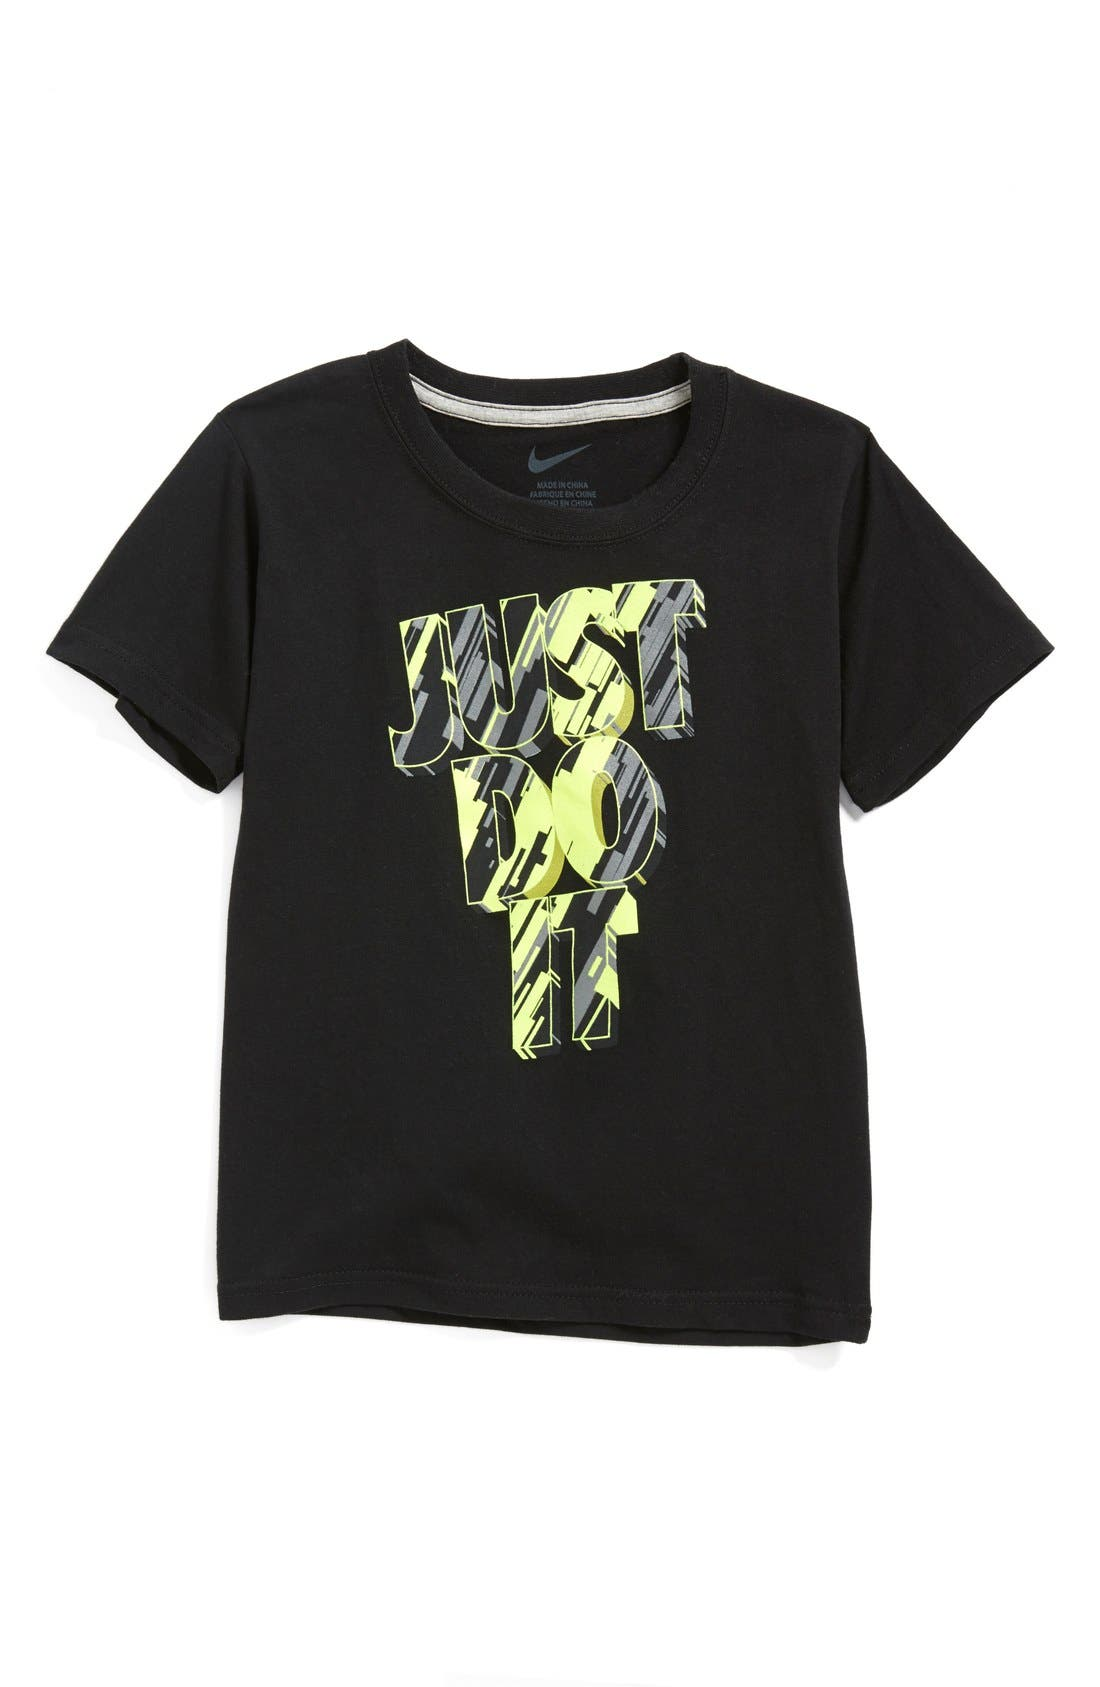 Alternate Image 1 Selected - Nike 'Just Do It' T-Shirt (Little Boys)